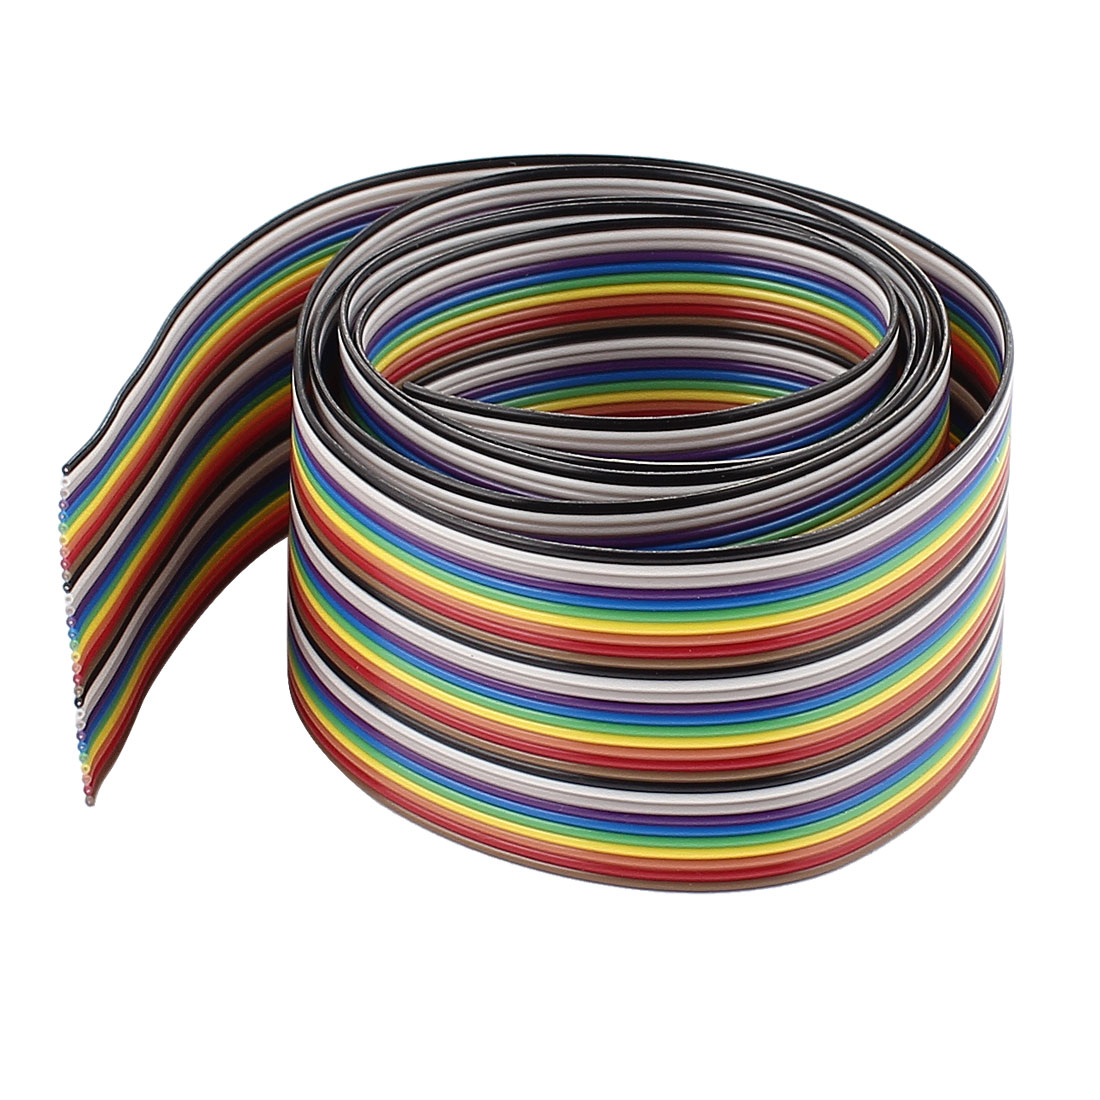 1m 3.3ft 30Pin Rainbow Color Flat Ribbon Cable IDC Wire 1.27mm